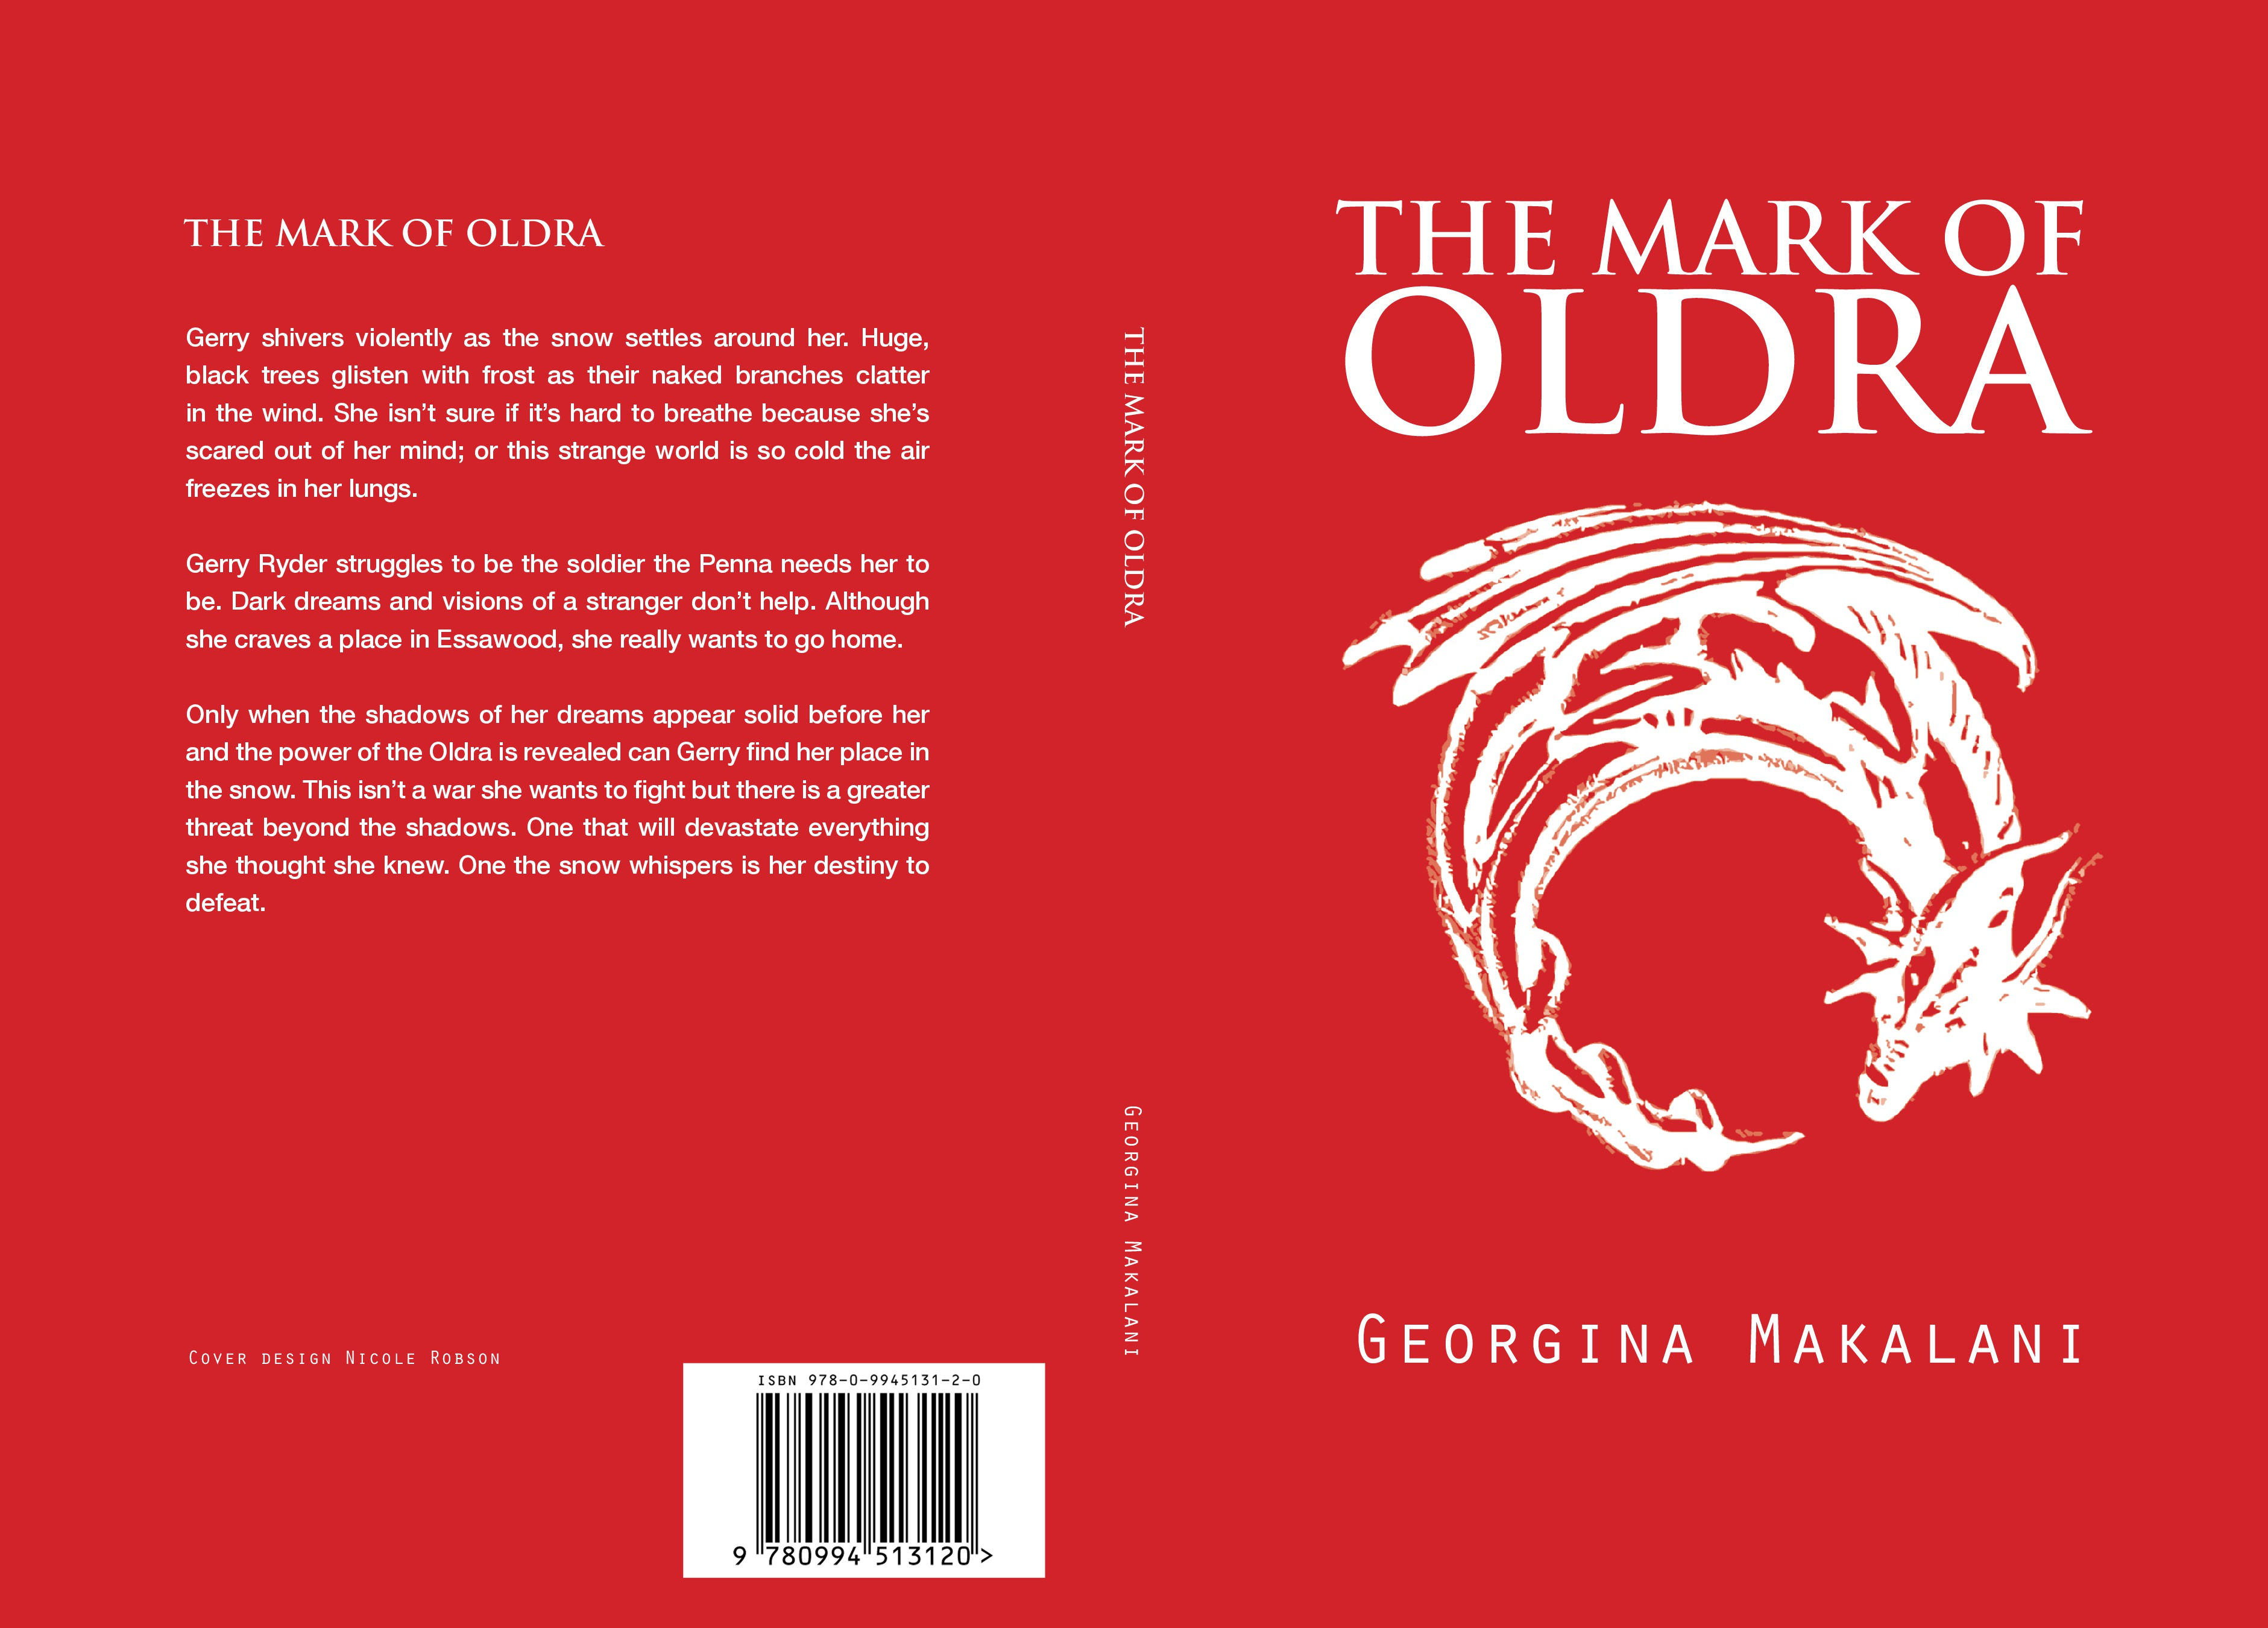 The Mark of Oldra